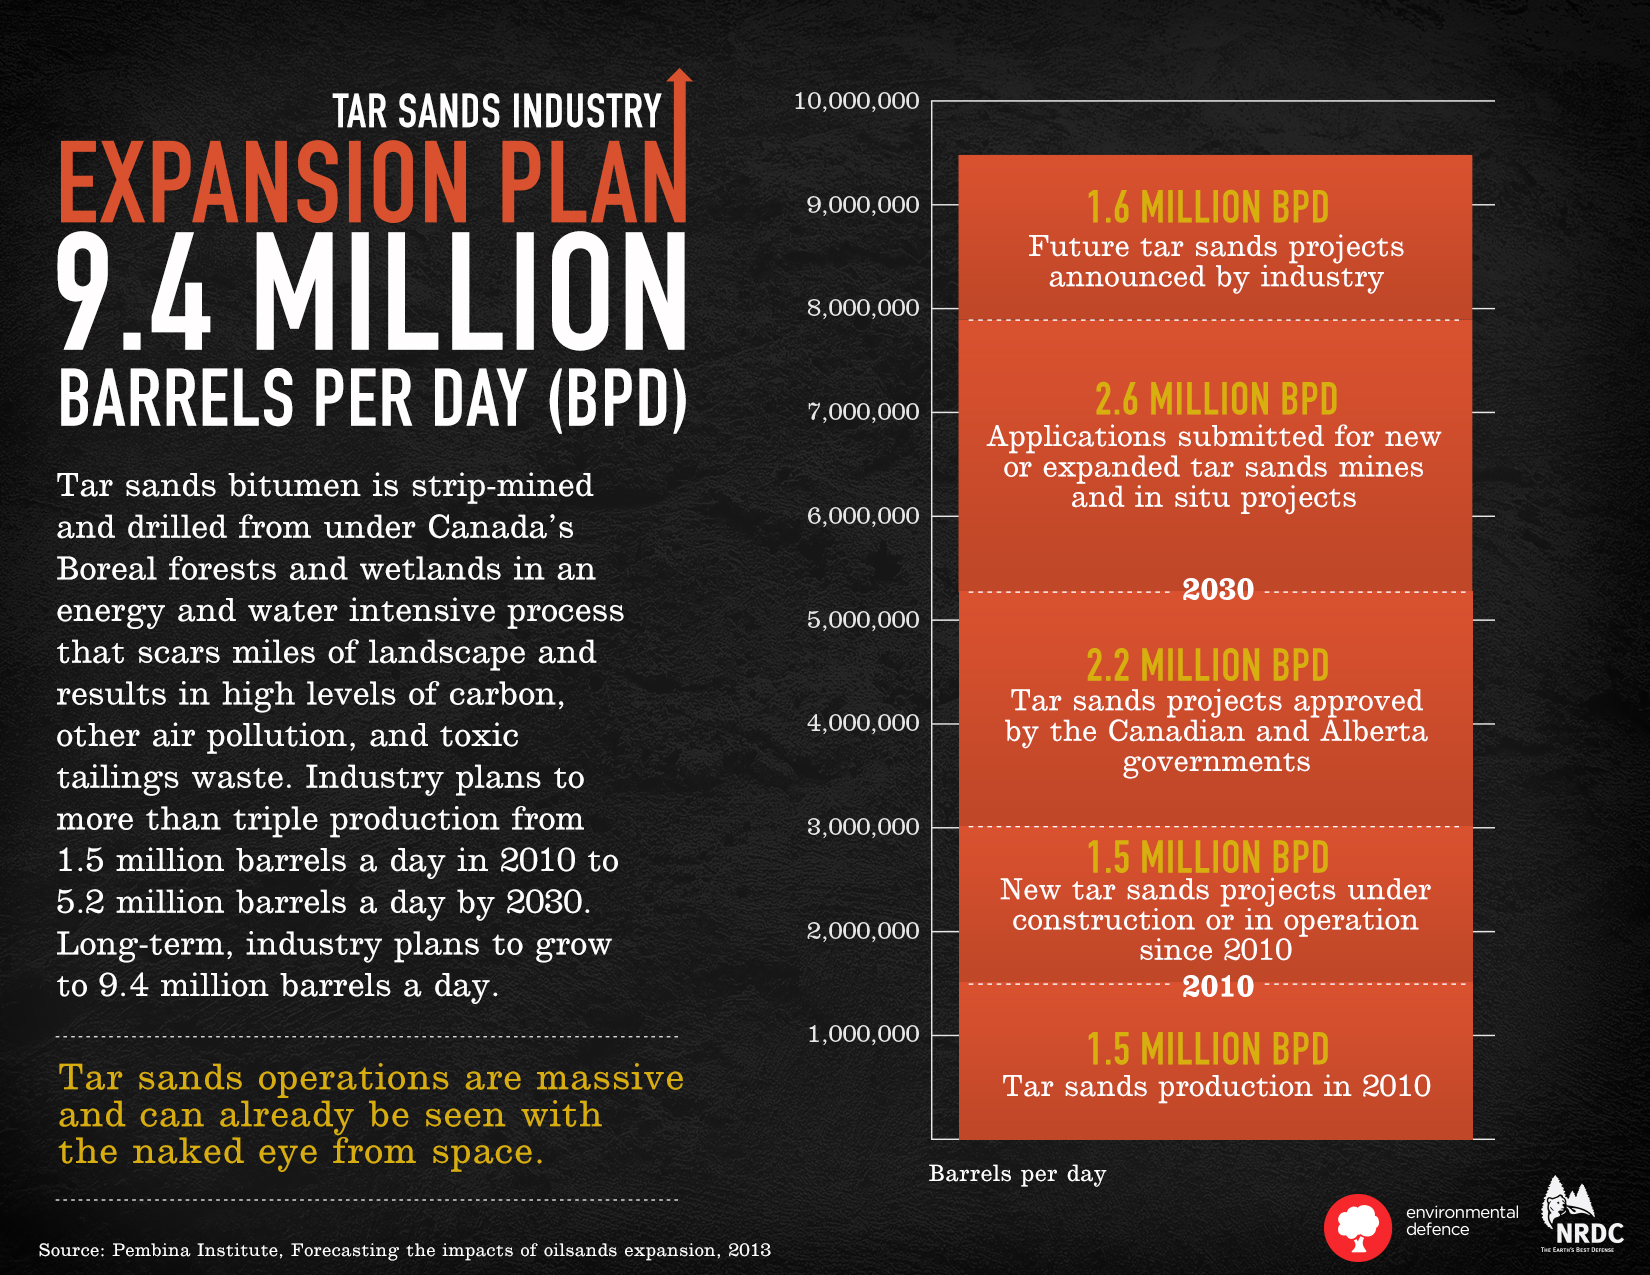 Tar sands expansion production plans